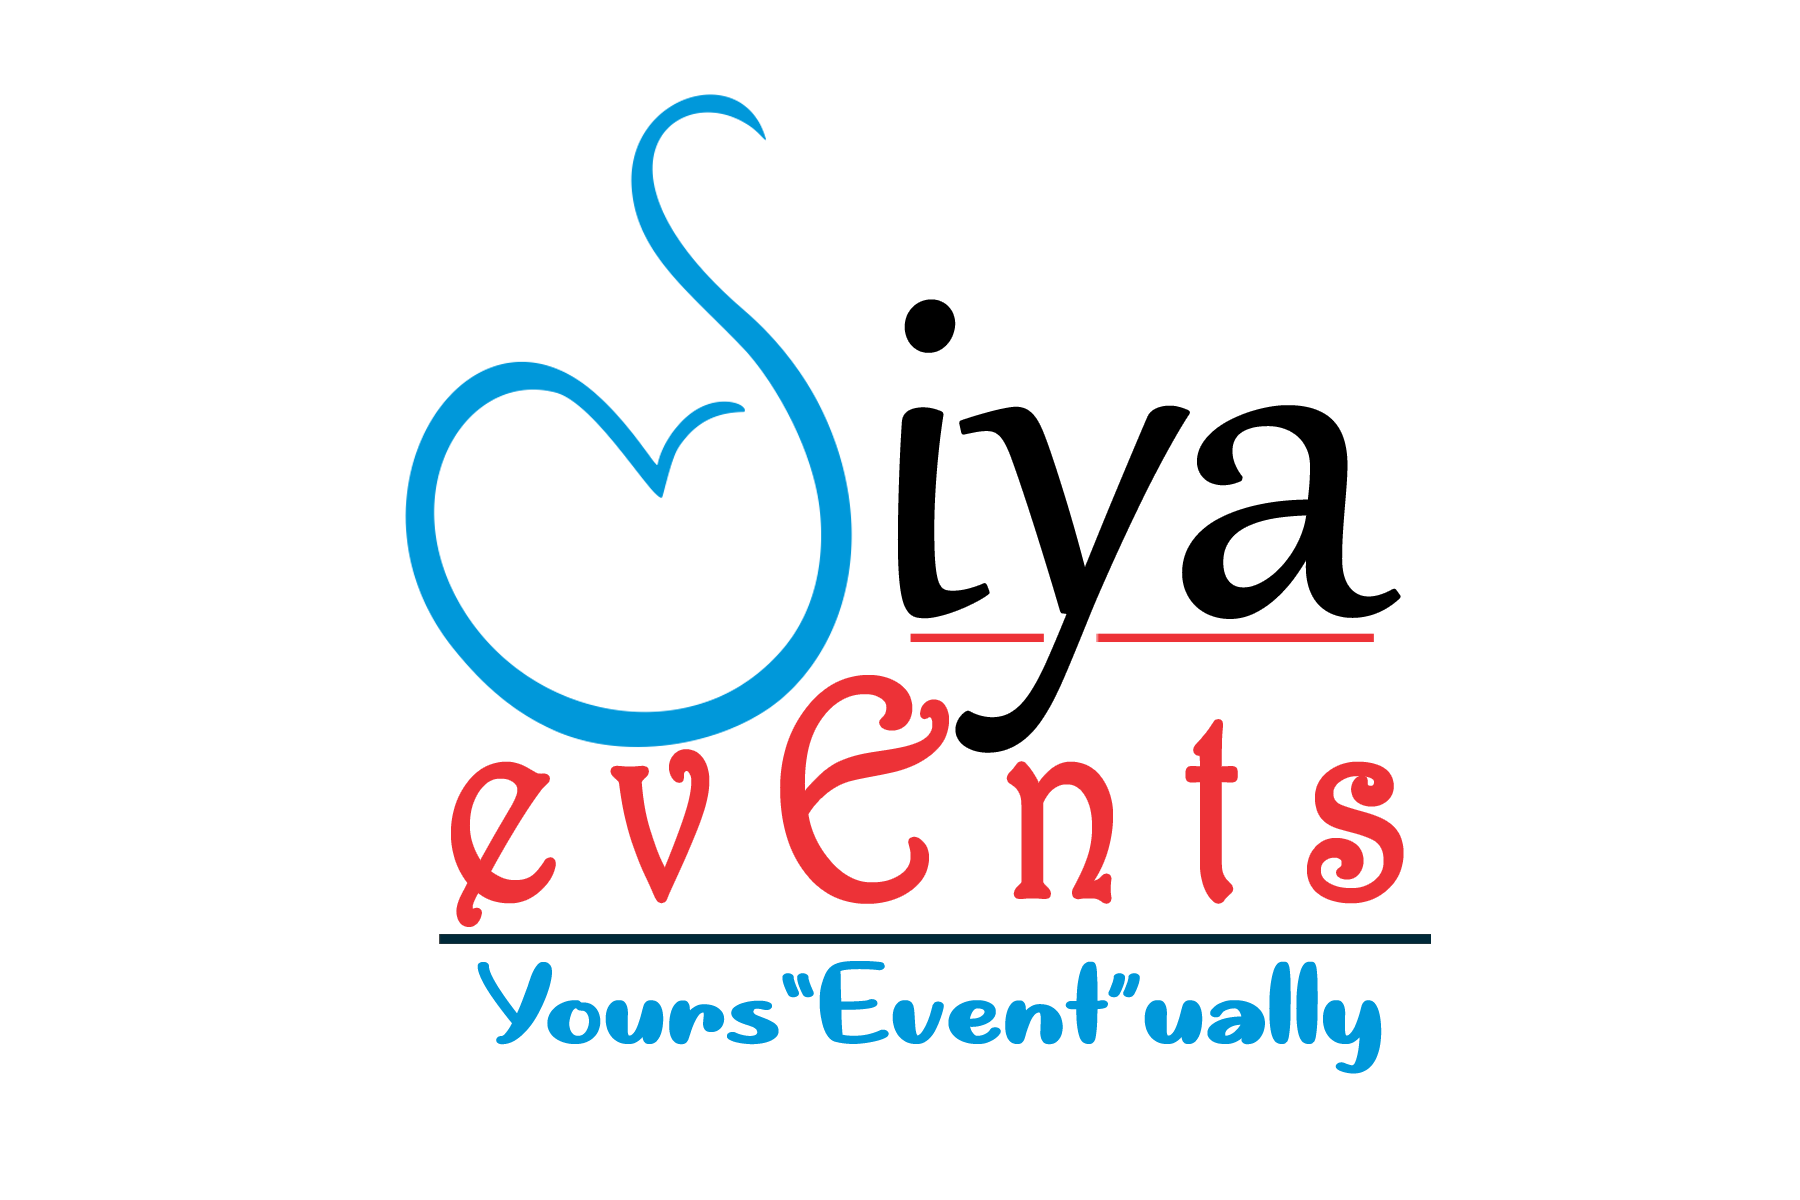 SIYA EVENTS